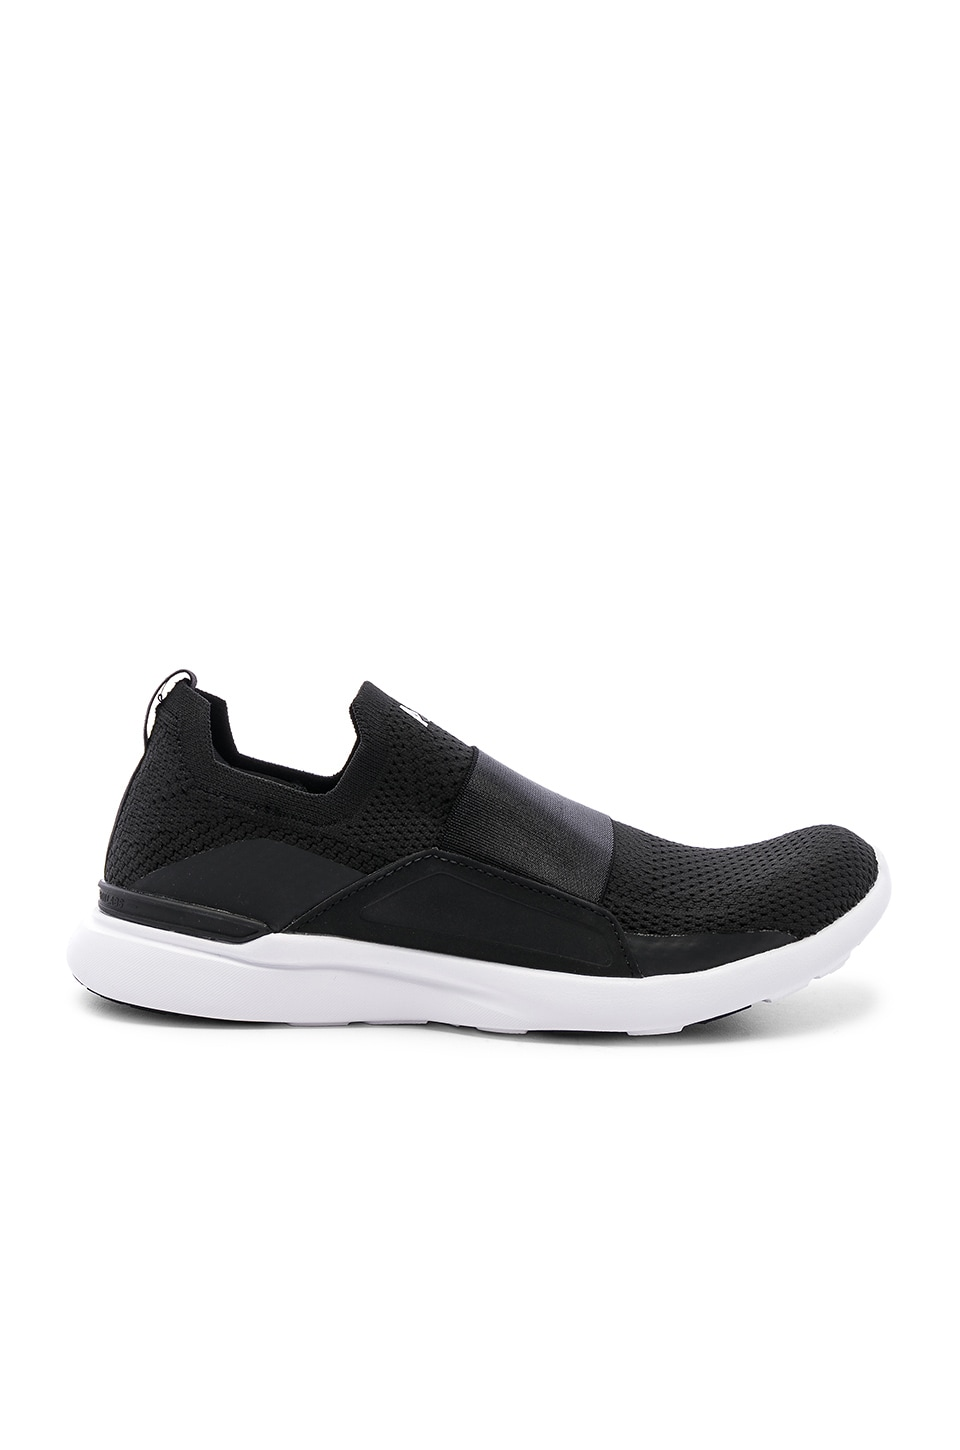 APL: Athletic Propulsion Labs Techloom Bliss Sneaker in Black & White